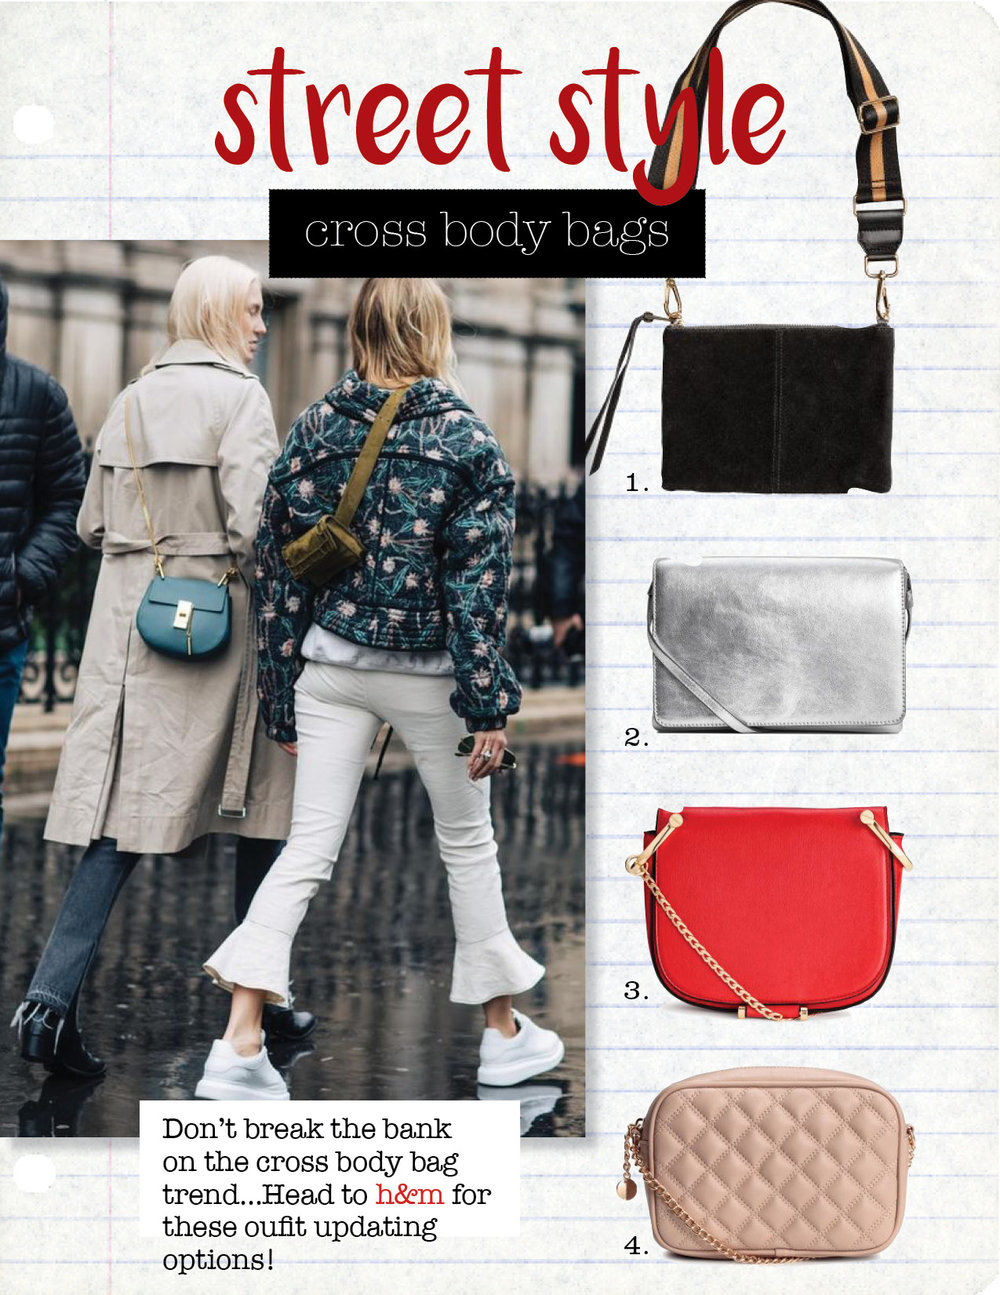 1. h&m shoulder bag with suede detail, $24,  hm.com  2. h&m cross body bag, $17,  hm.com  3. h&m cross body bag , $29,  hm.com  4. h&m quilted cross body bag, $24,  hm.com